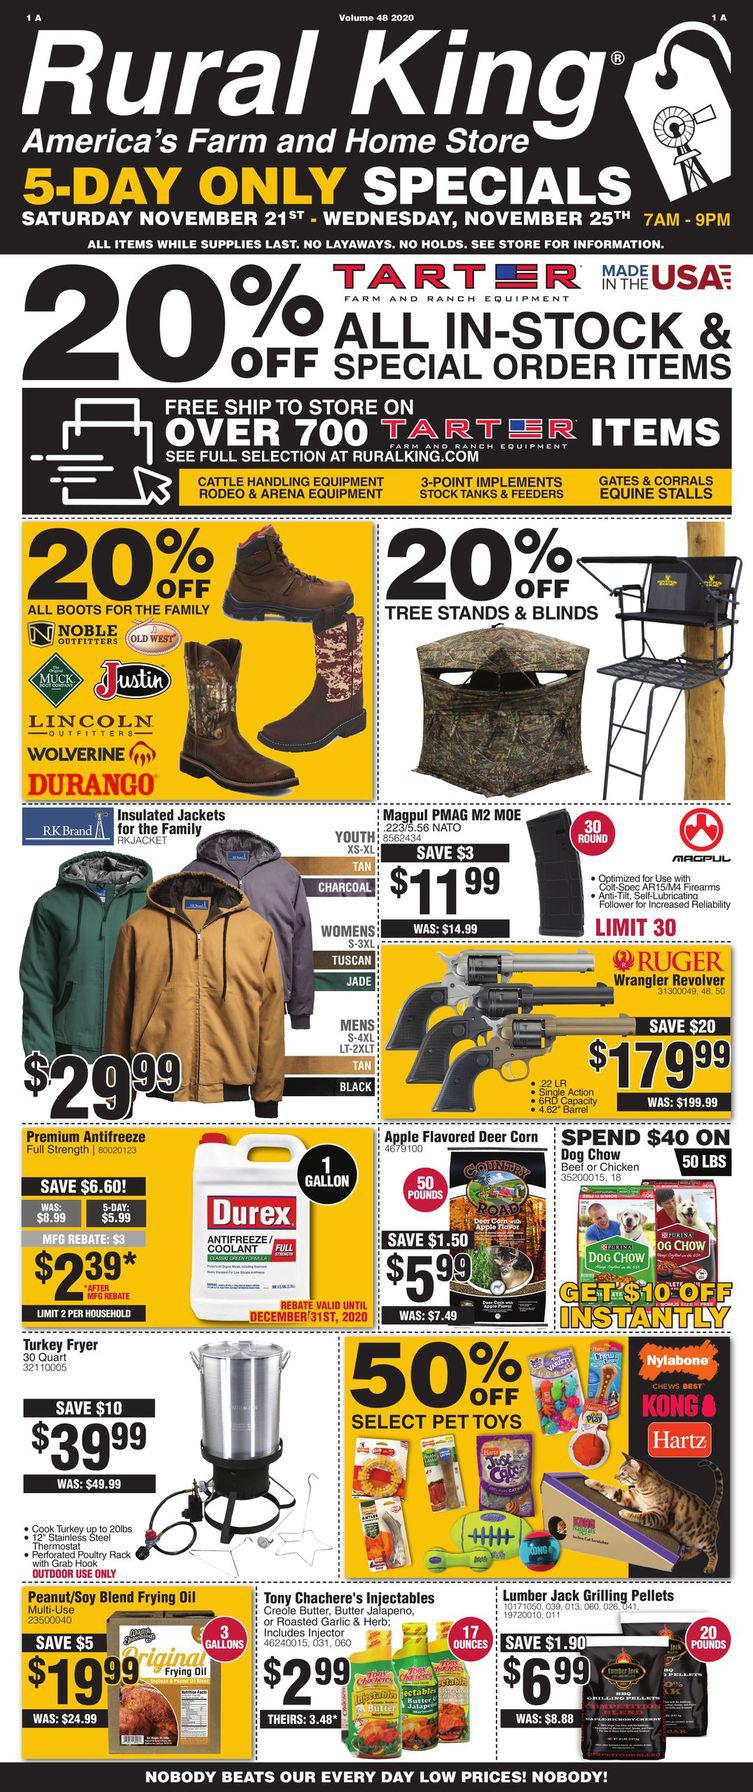 Rural King Early Black Friday Ad 2020